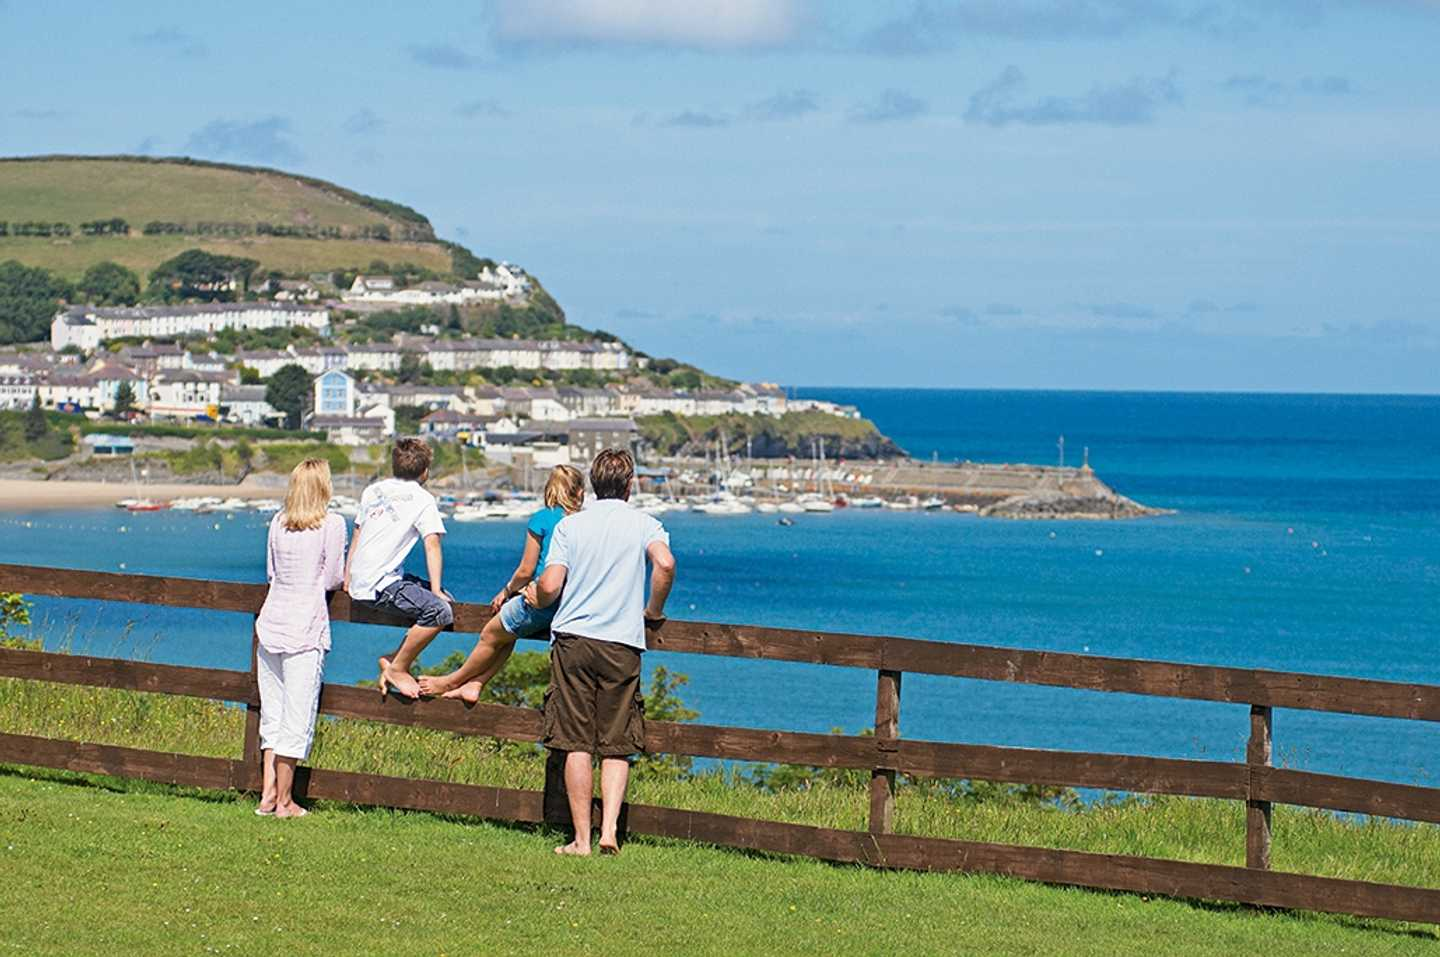 A family admiring the seaview at Quay West